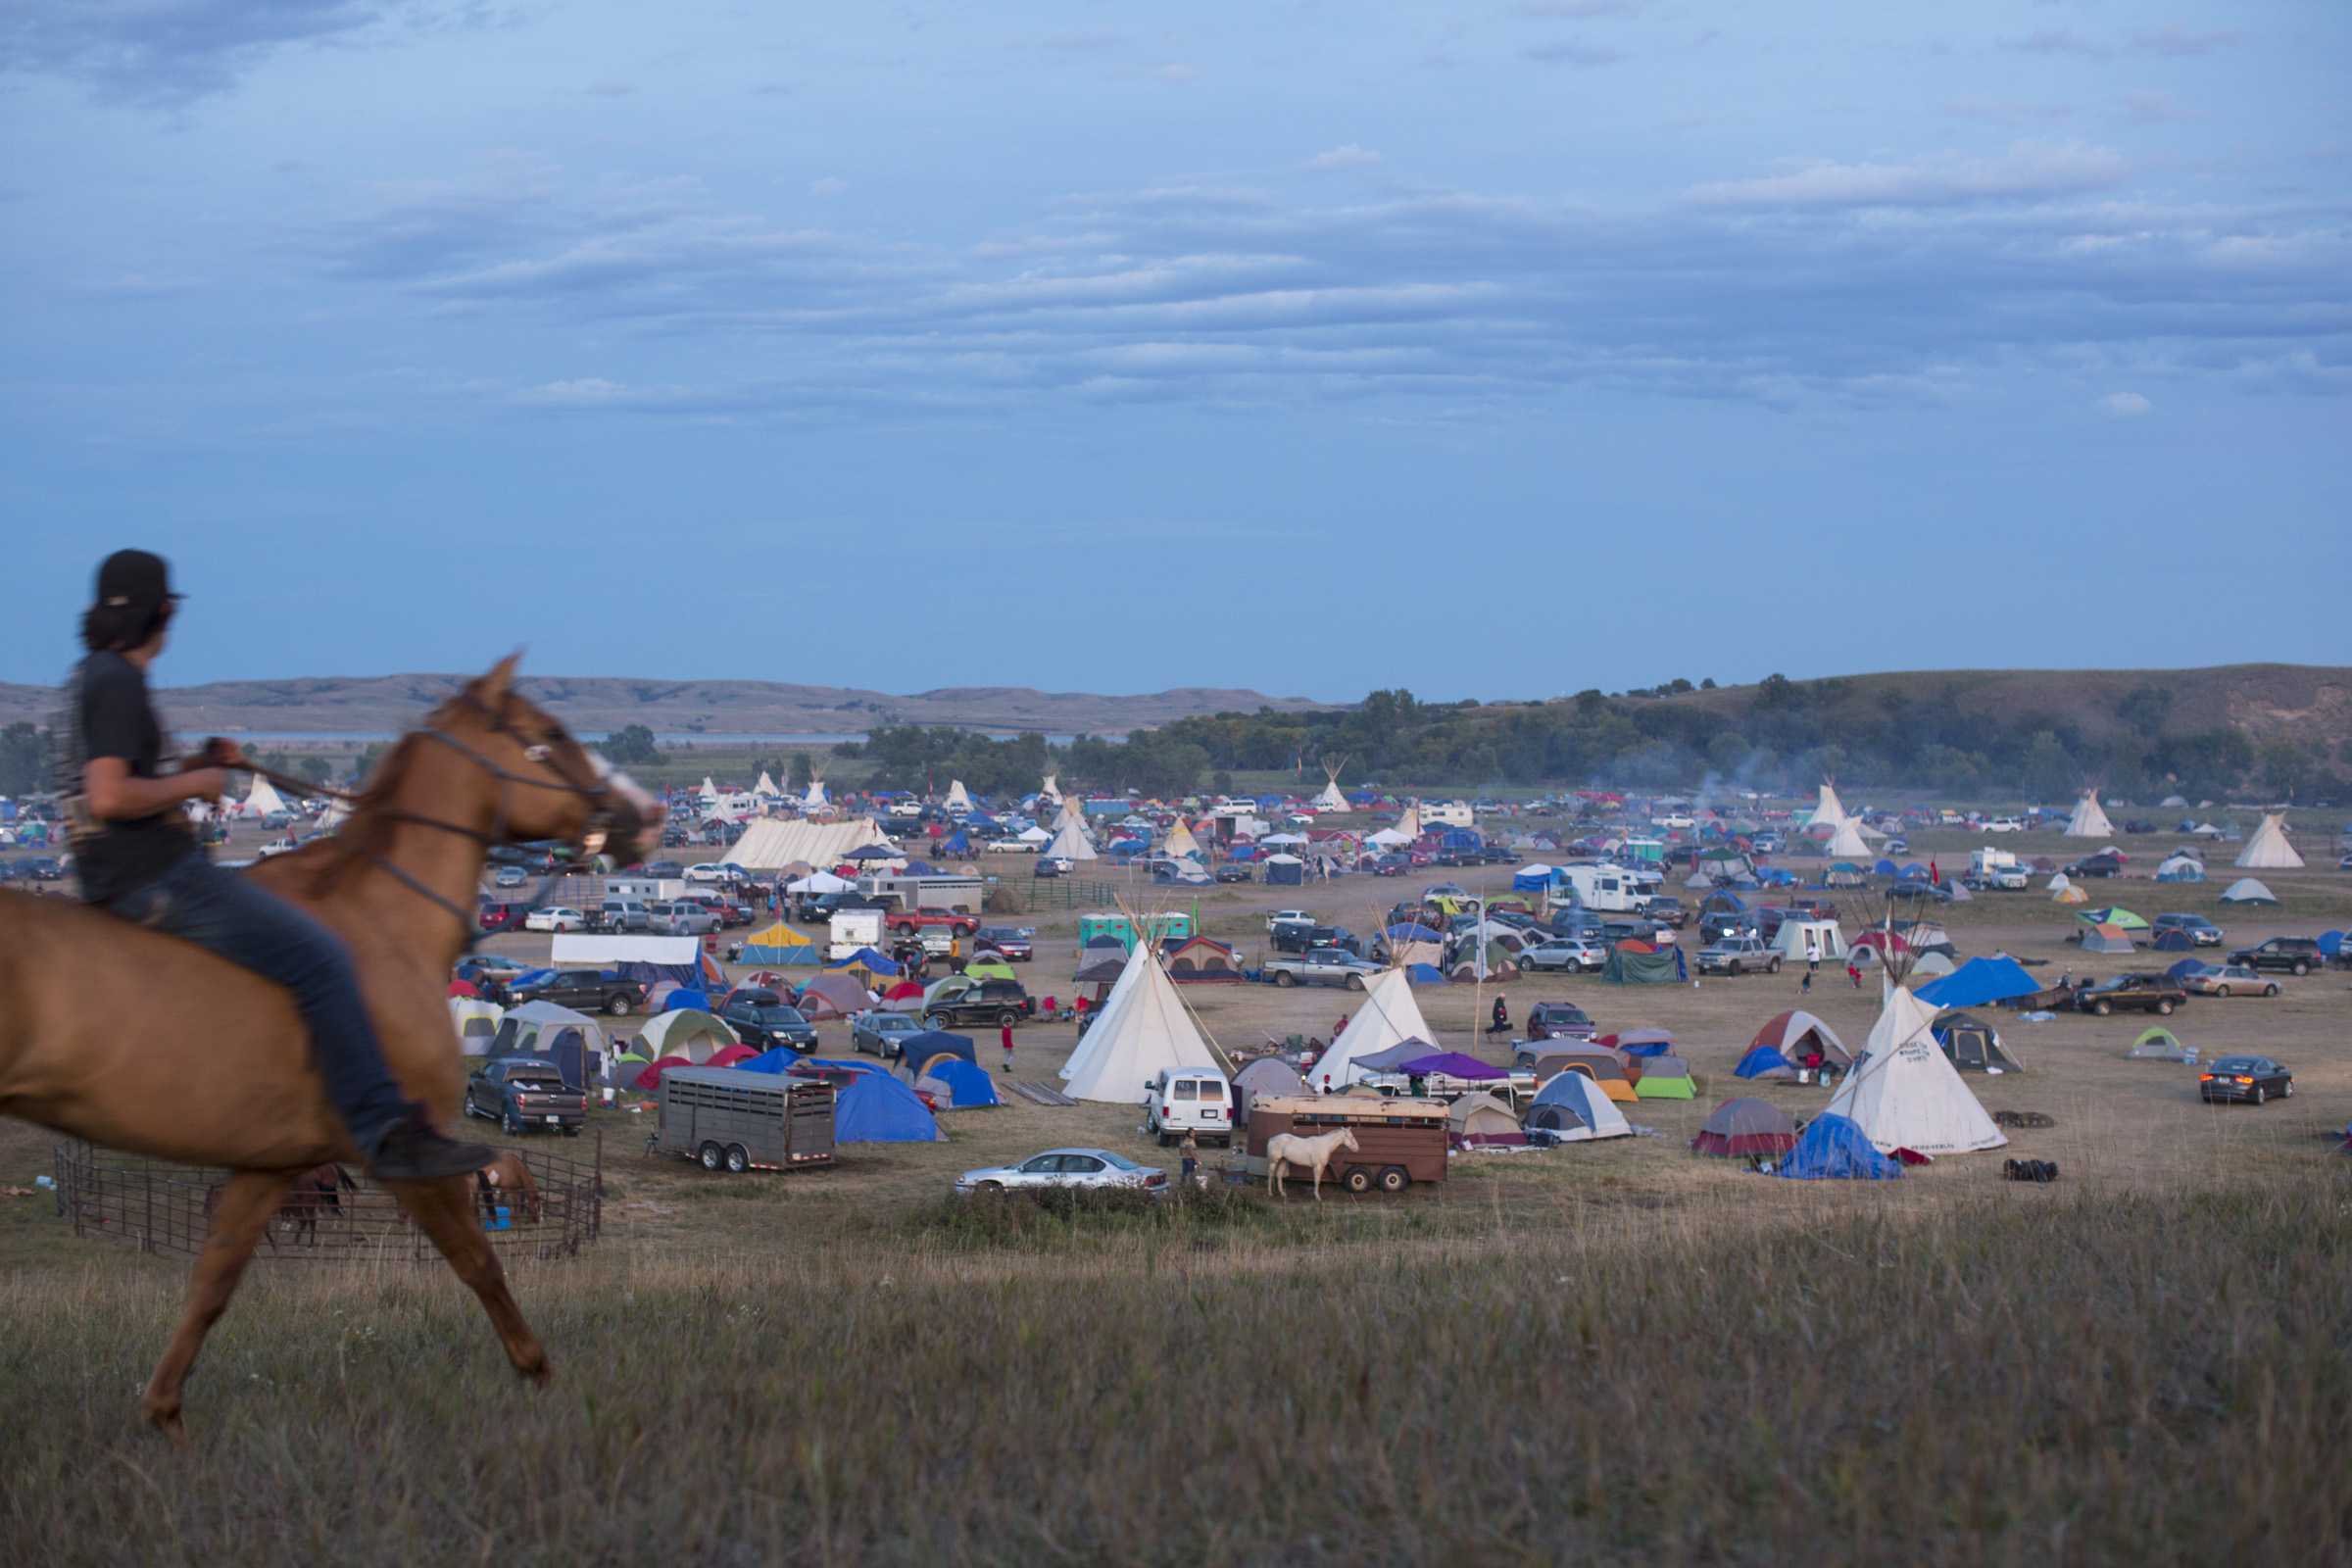 A man rides his horse up a hill overlooking the Oceti Sakowin Camp on Sunday, Sept. 11, 2016. (Photo by Angus Mordant/Groundtruth)